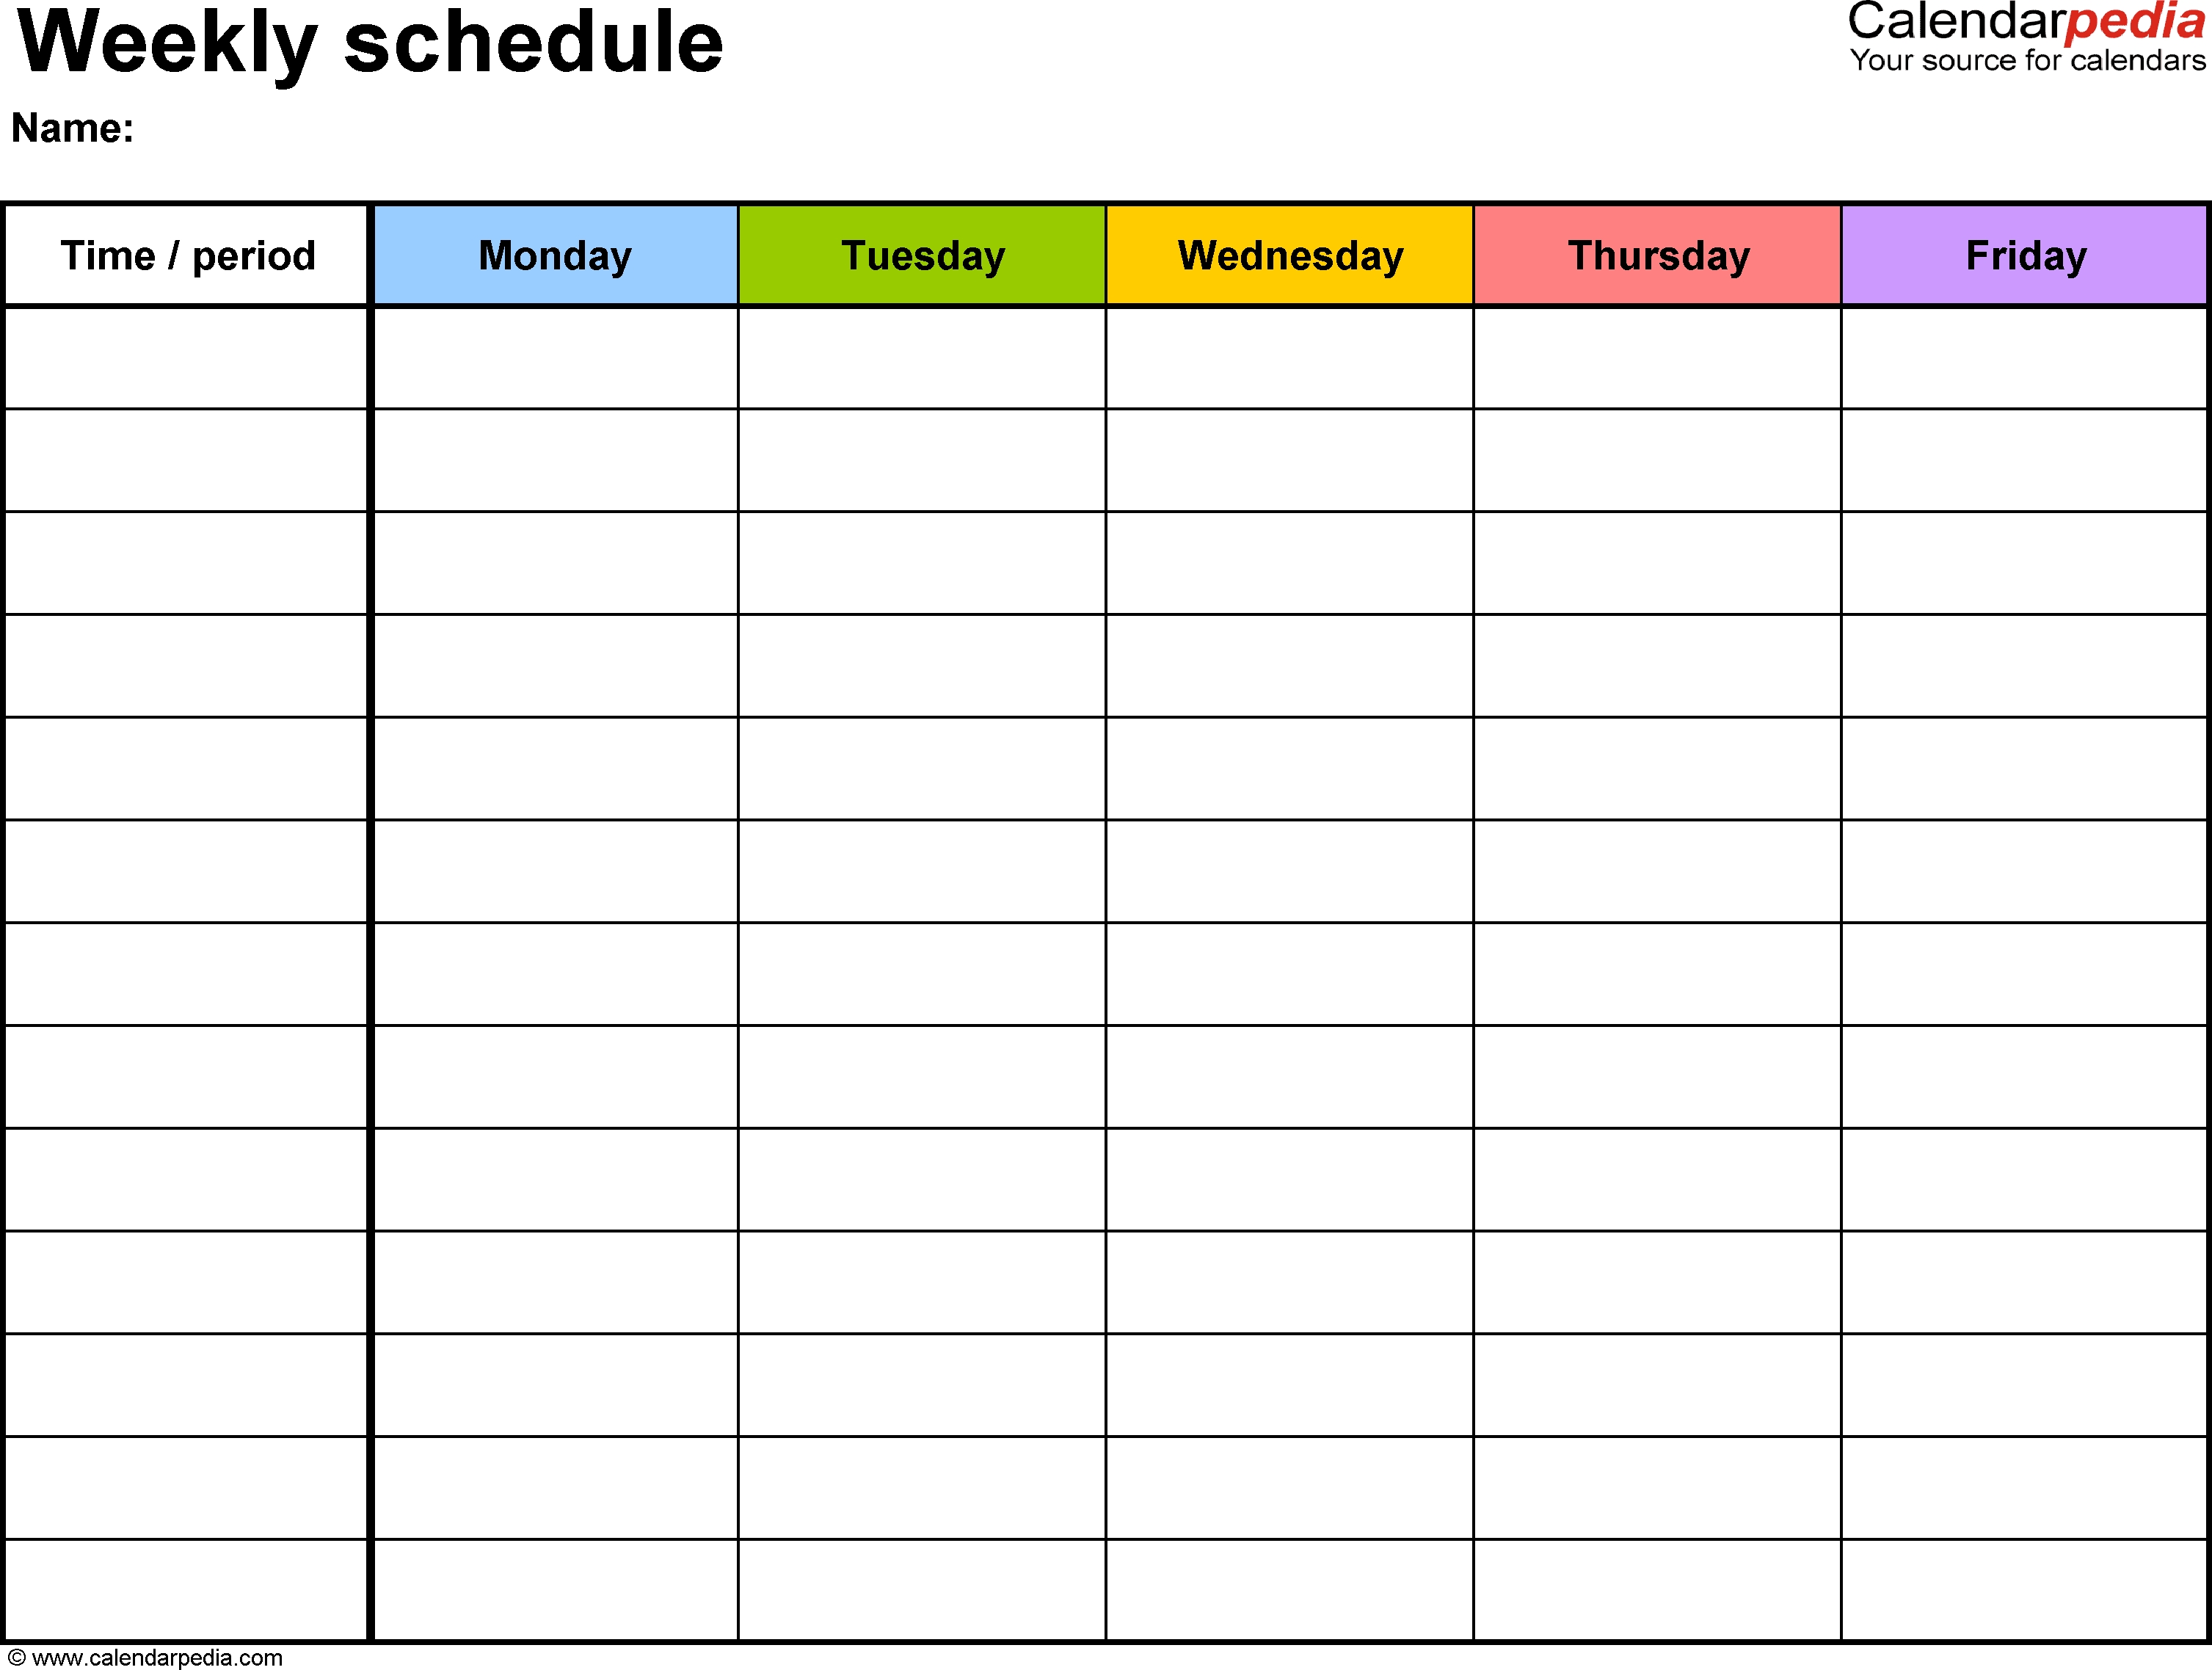 Free Weekly Schedule Templates For Pdf - 18 Templates inside Printable Blank Bi-Weekly Employee Schedule